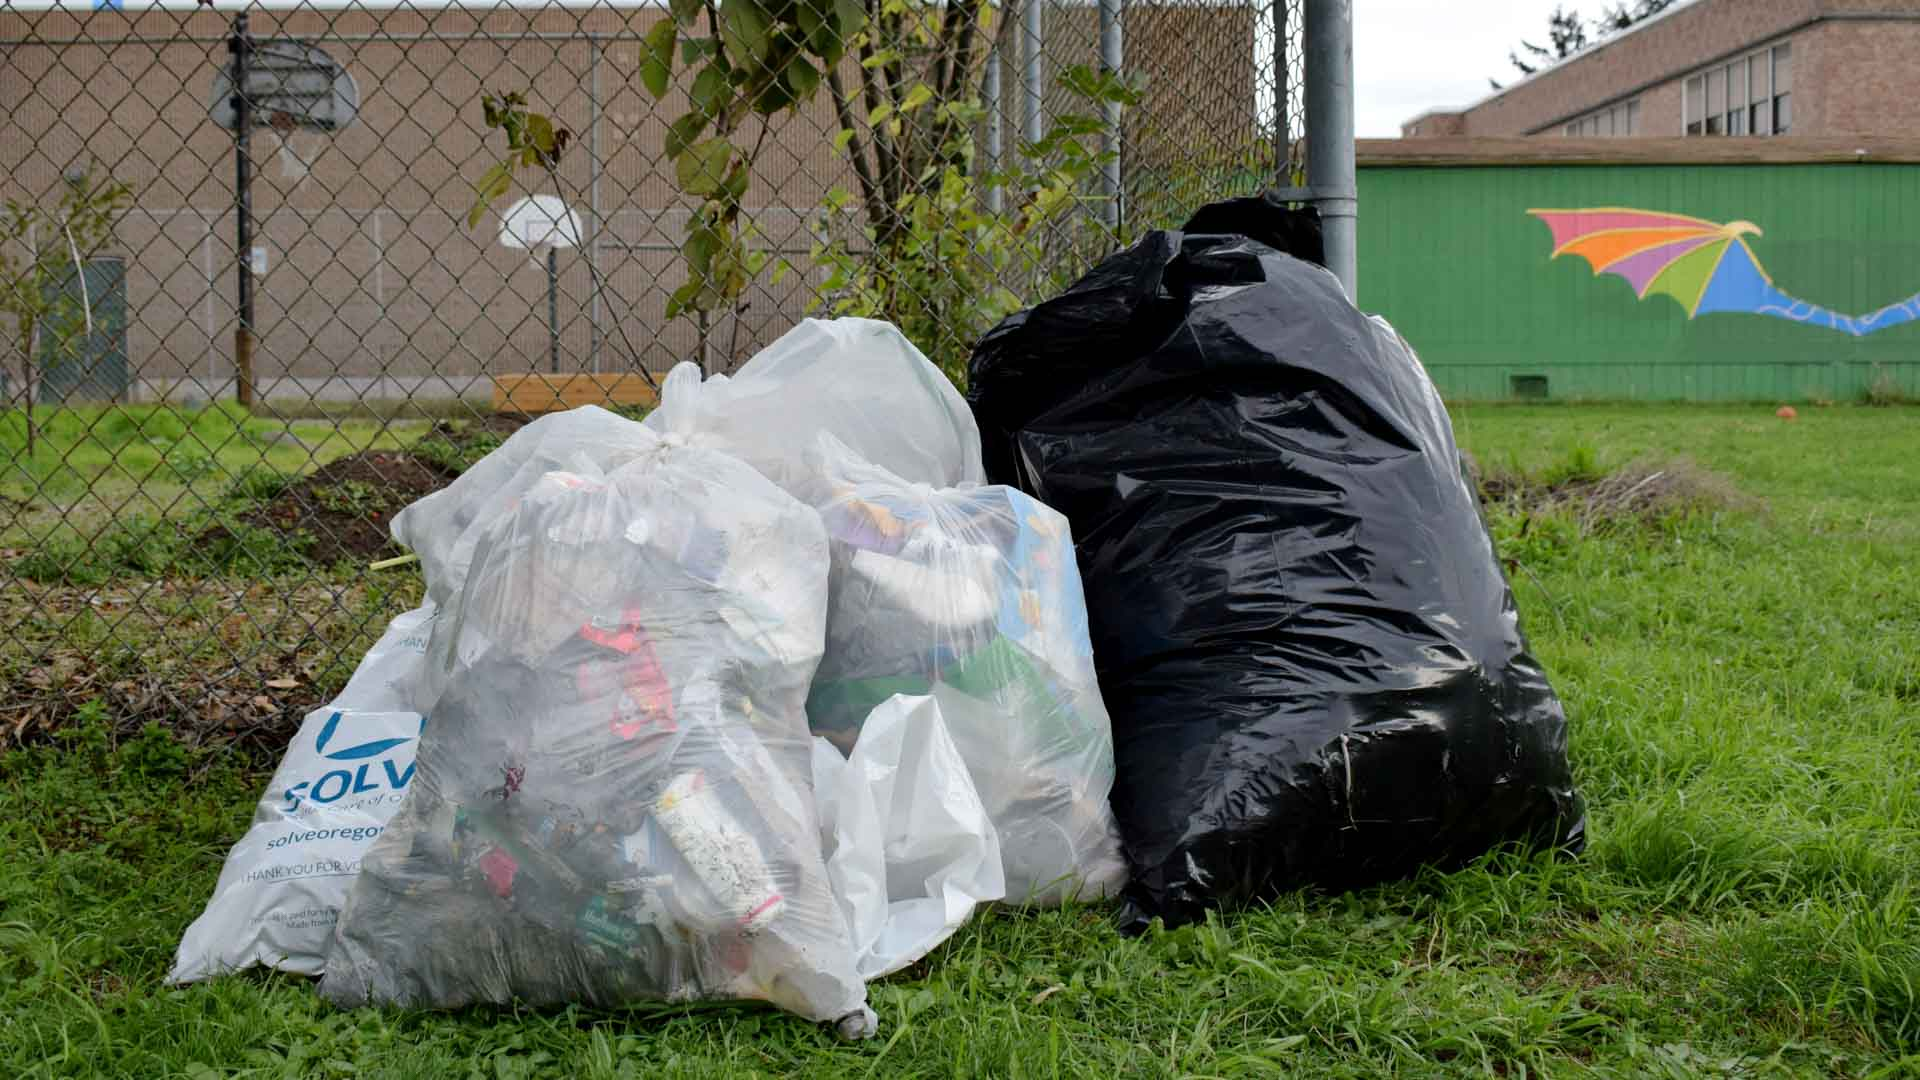 Bags of trash on a clean schoolyard